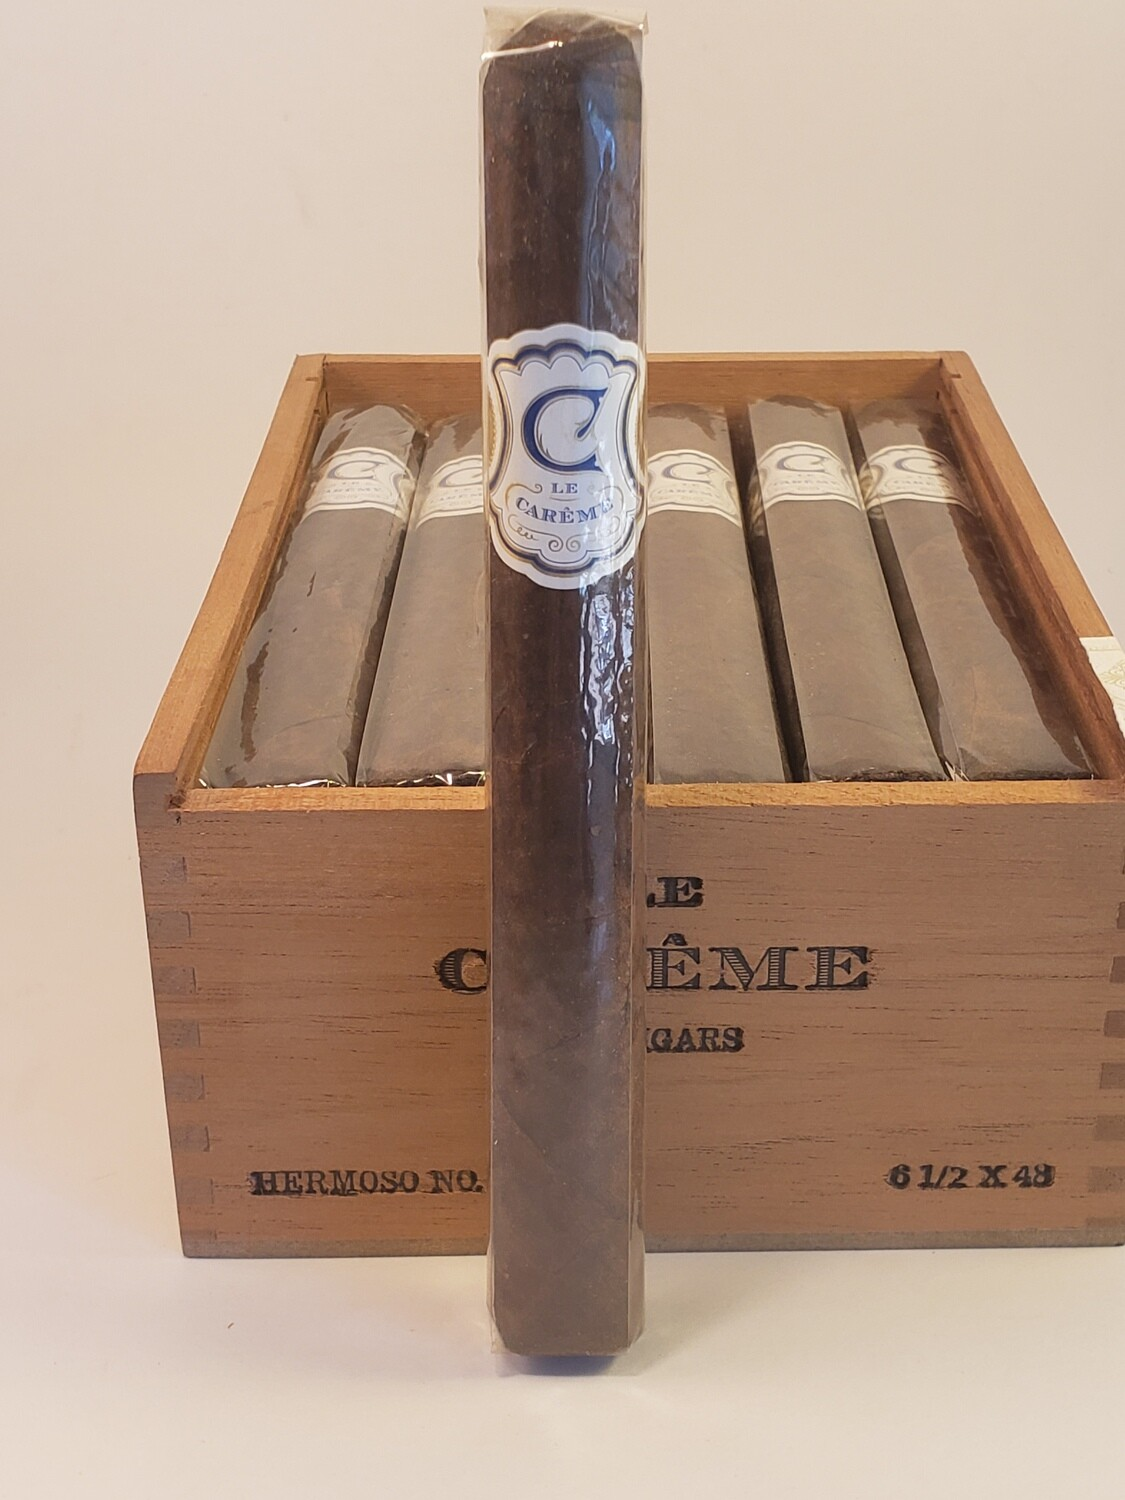 Crowned Heads Le Careme 6 1/2 x 44